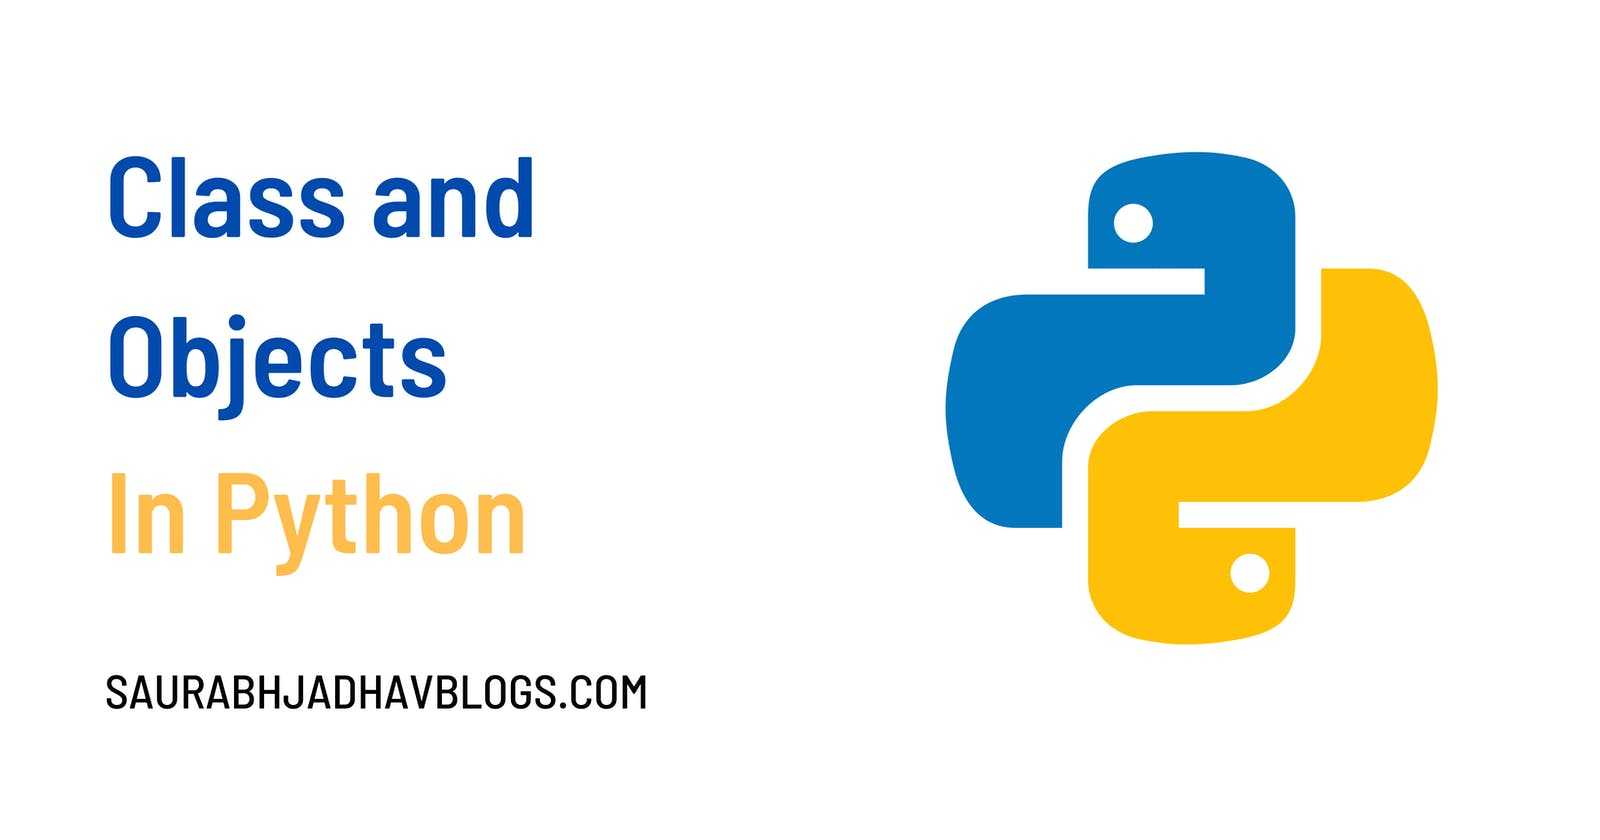 Class and Objects - Object Oriented Programming in Python